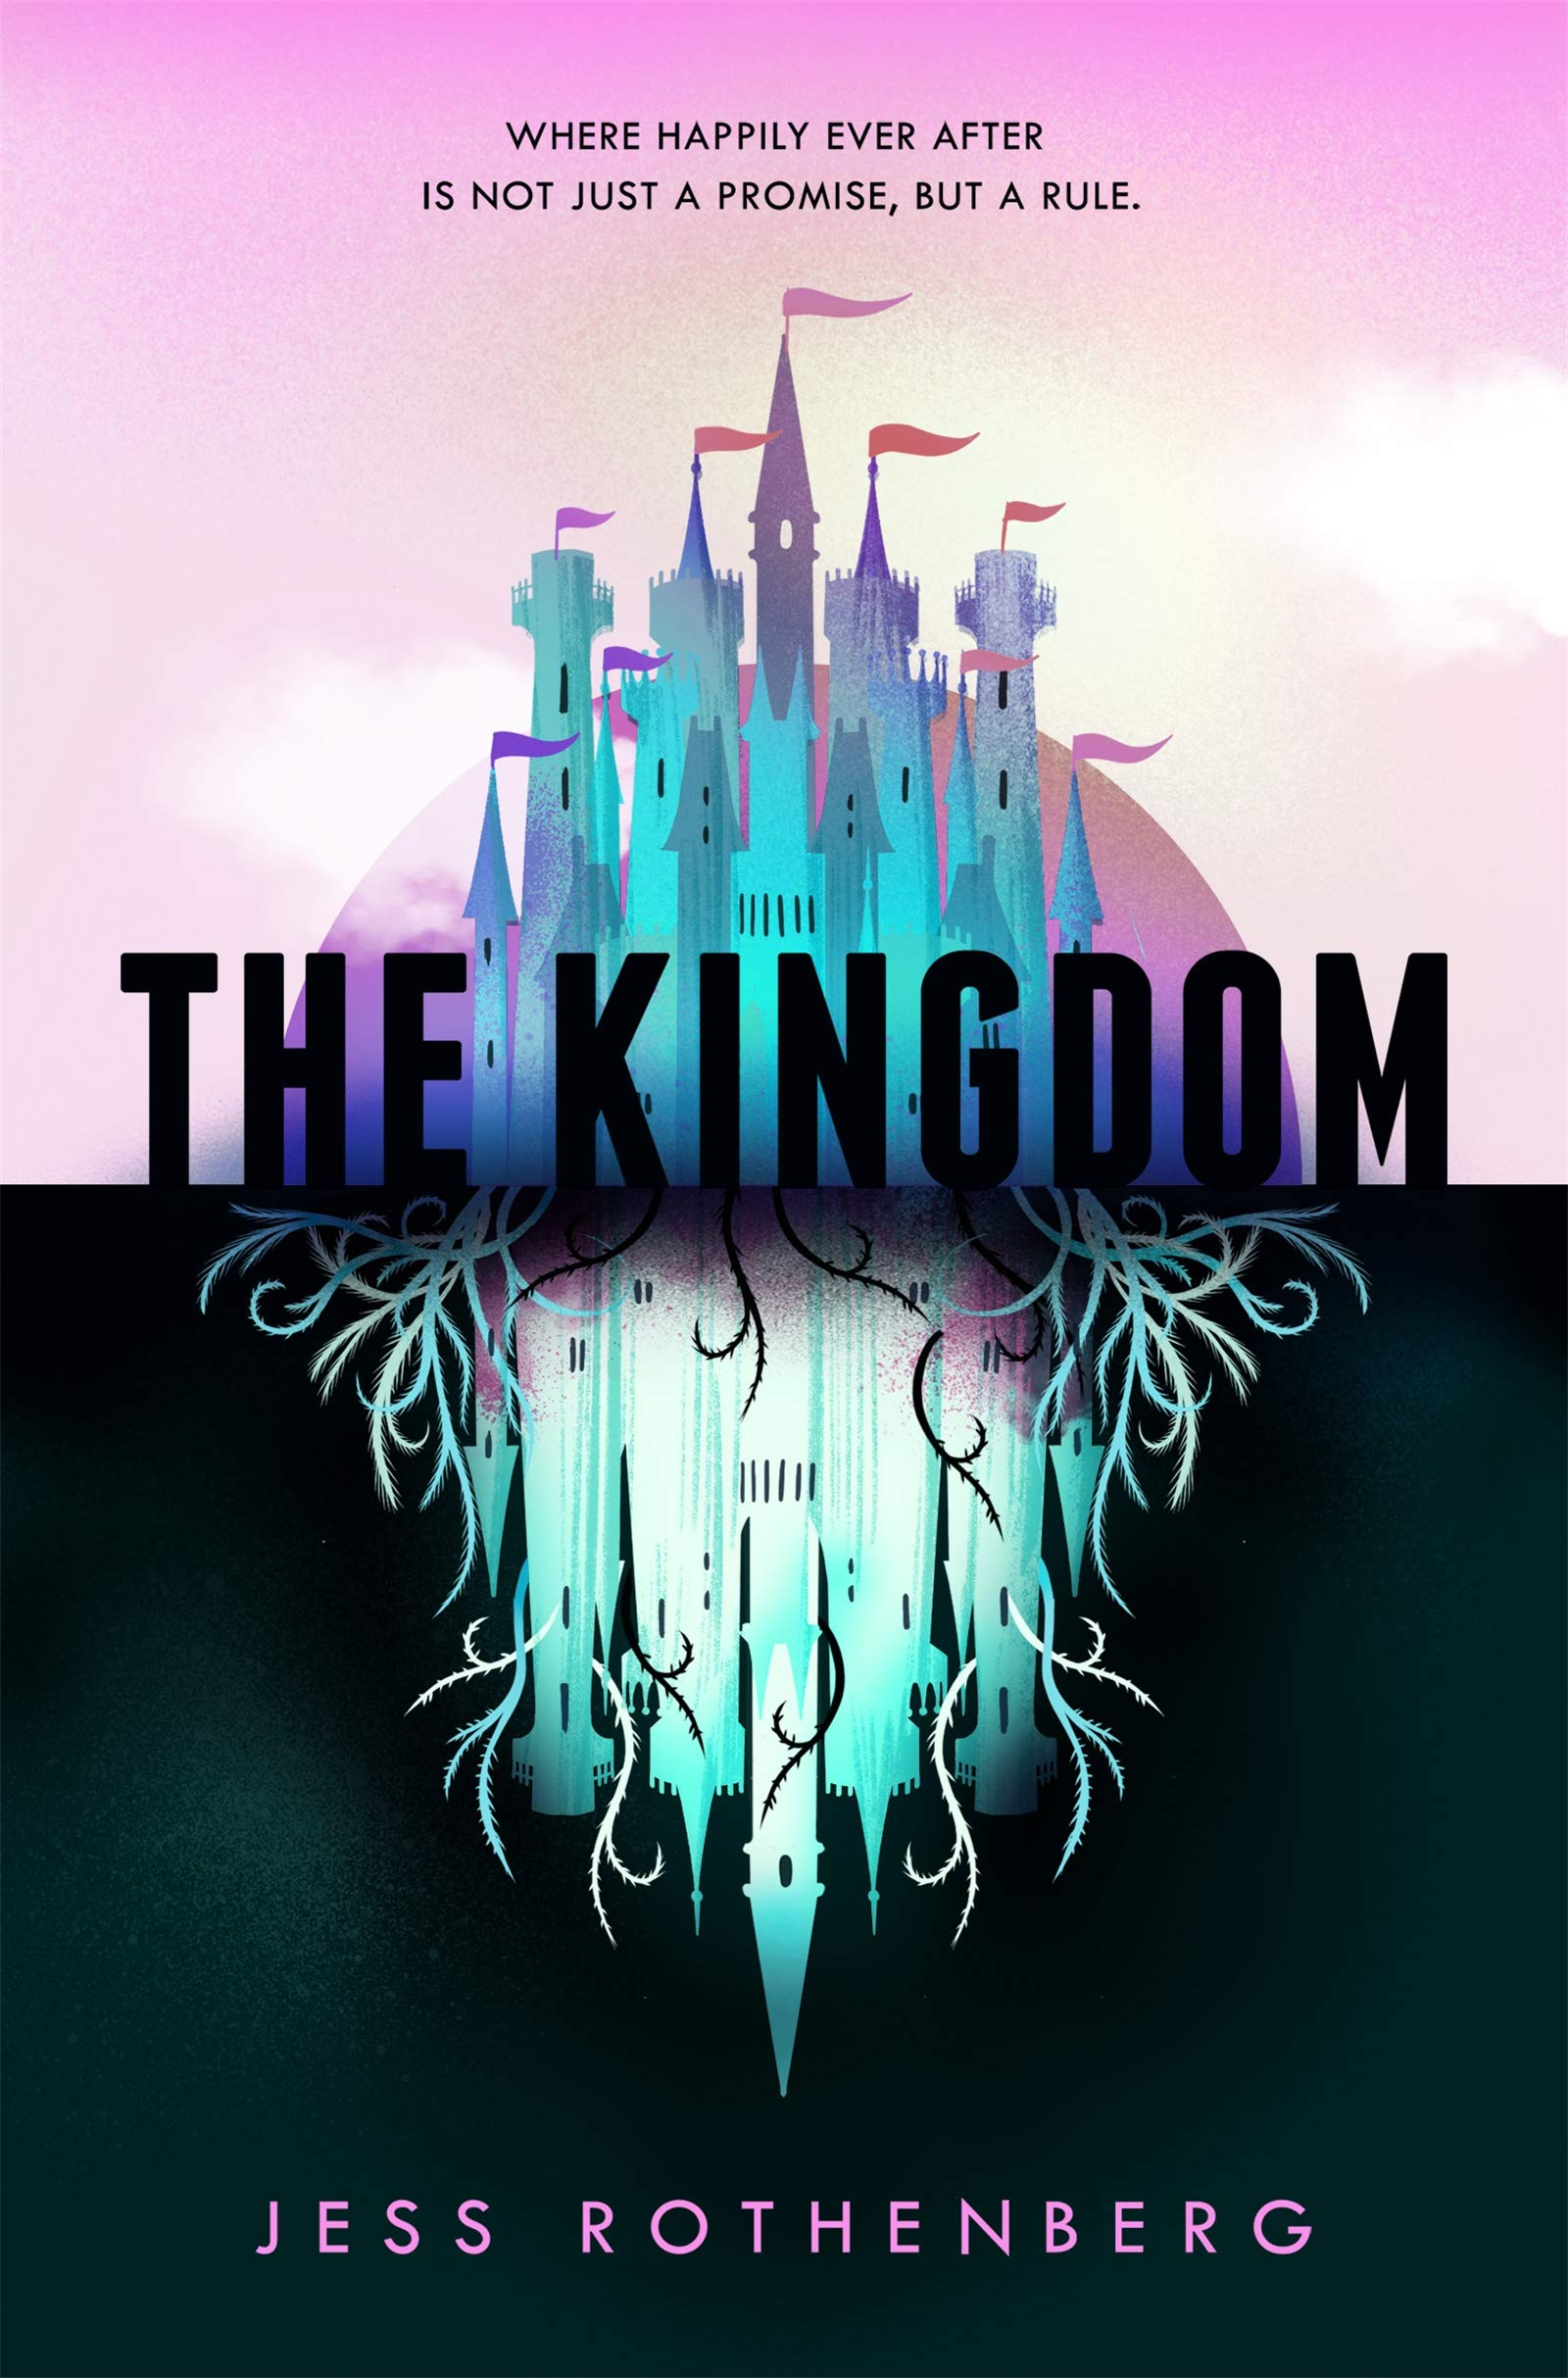 The Kingdom: Amazon.co.uk: Rothenberg, Jess: 9781509899388: Books